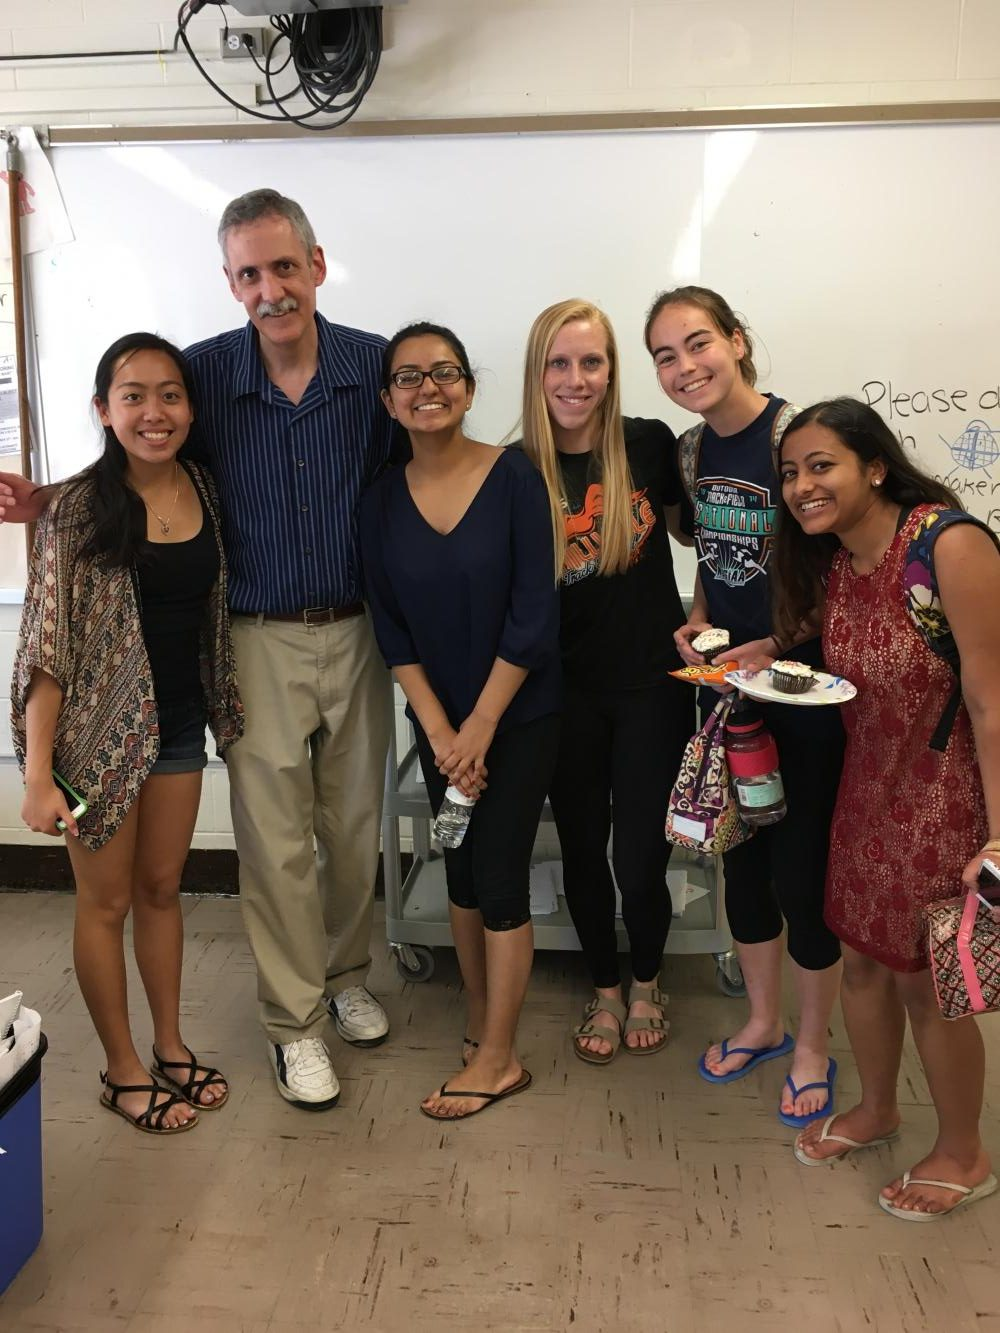 (Left to Right) Alexis Cao, Mr. Spitz, Srishti Dhar, Megan Quimby, Patricia Thomas, and Megha Bharadwaj